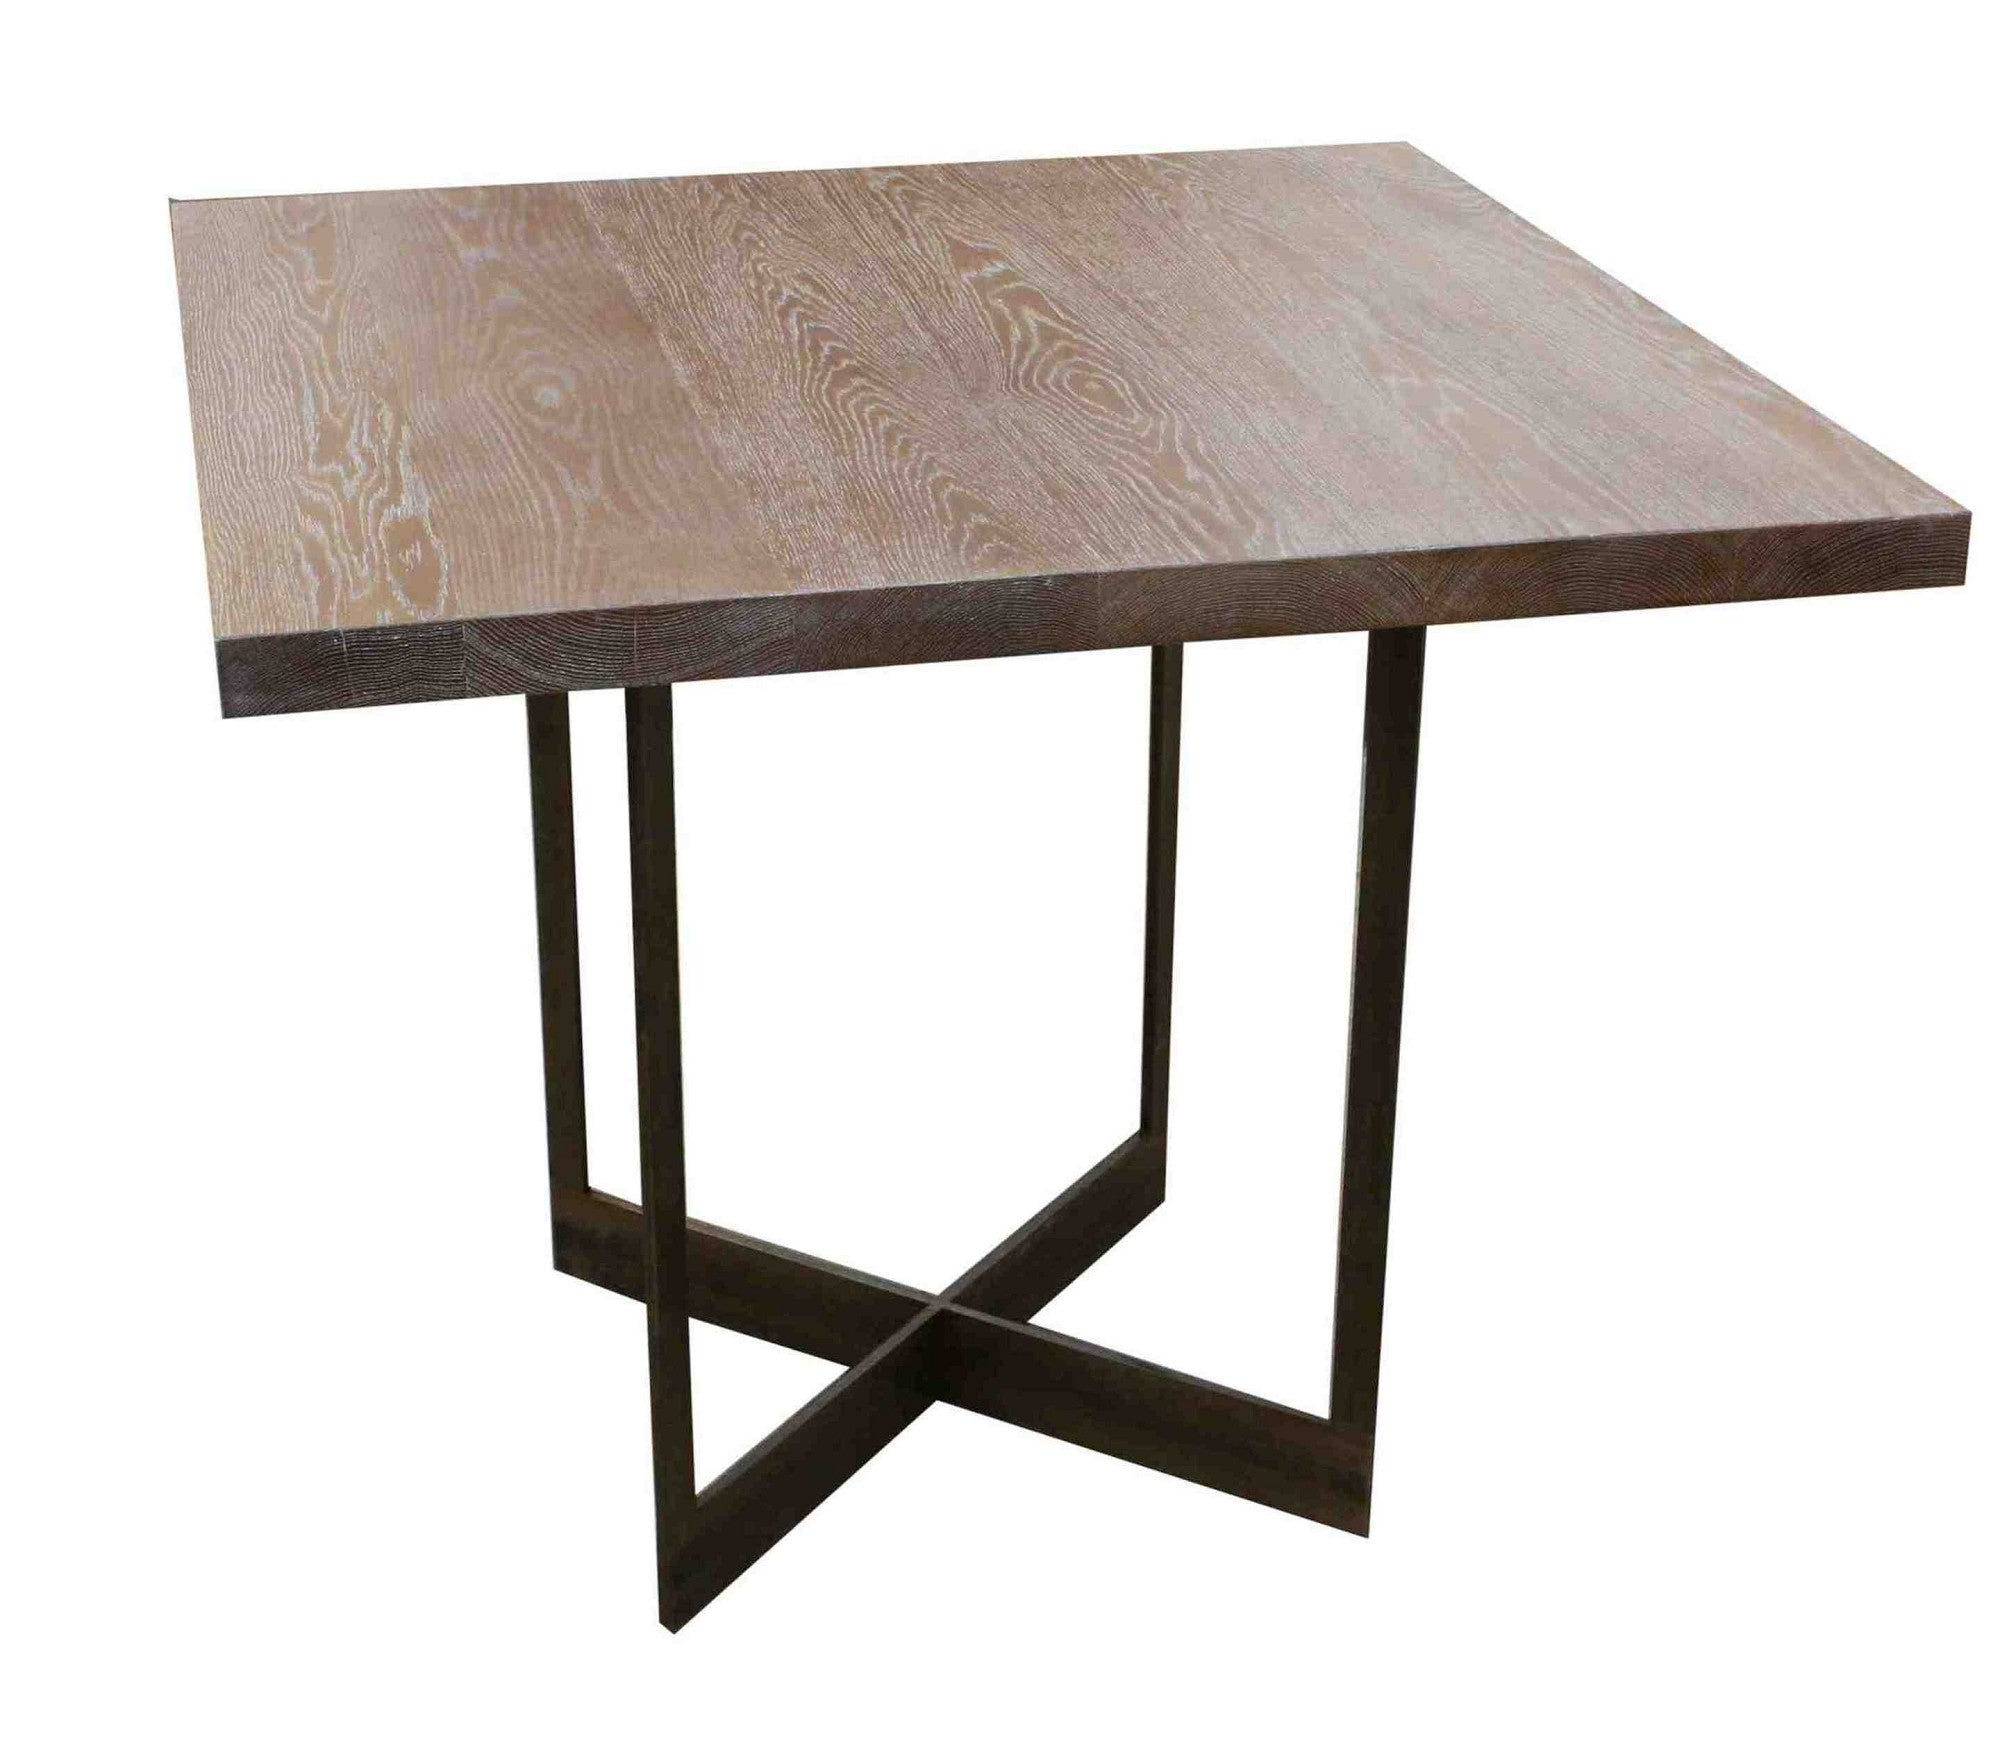 Industrial Modern Game Table Industrial Modern Game Table ...